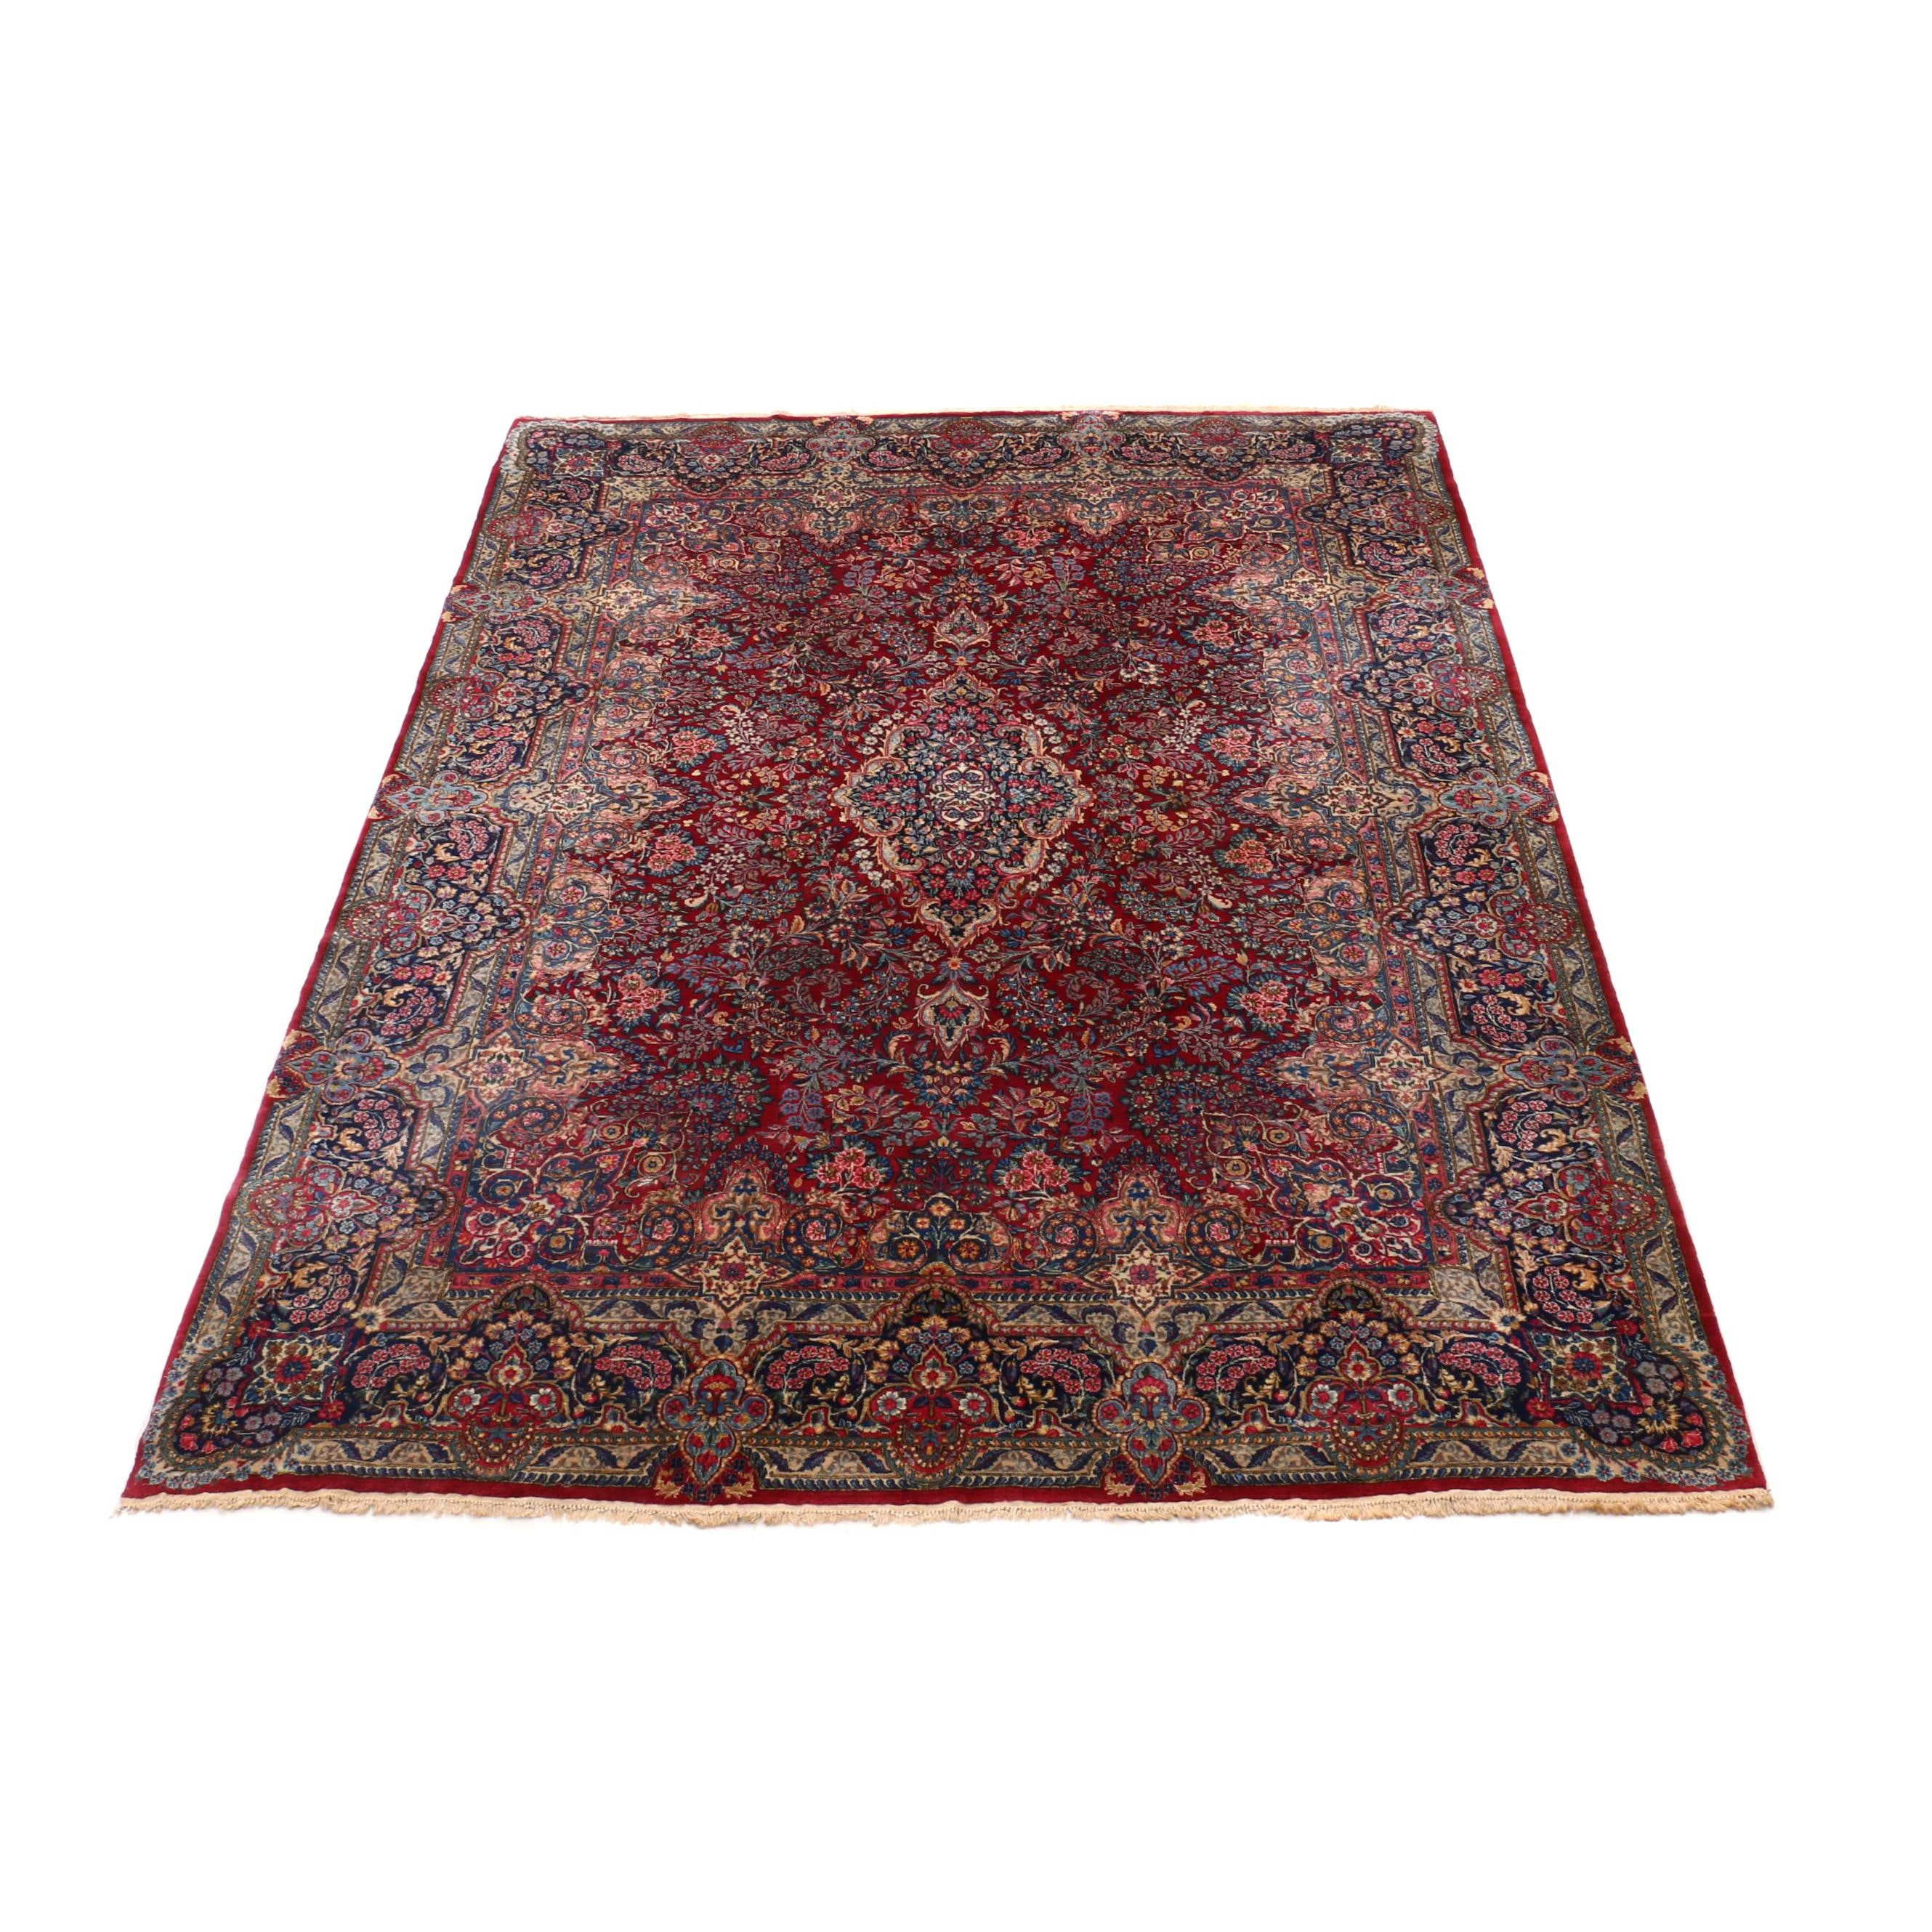 Hand-Knotted Persian Kerman Room Sized Wool Rug